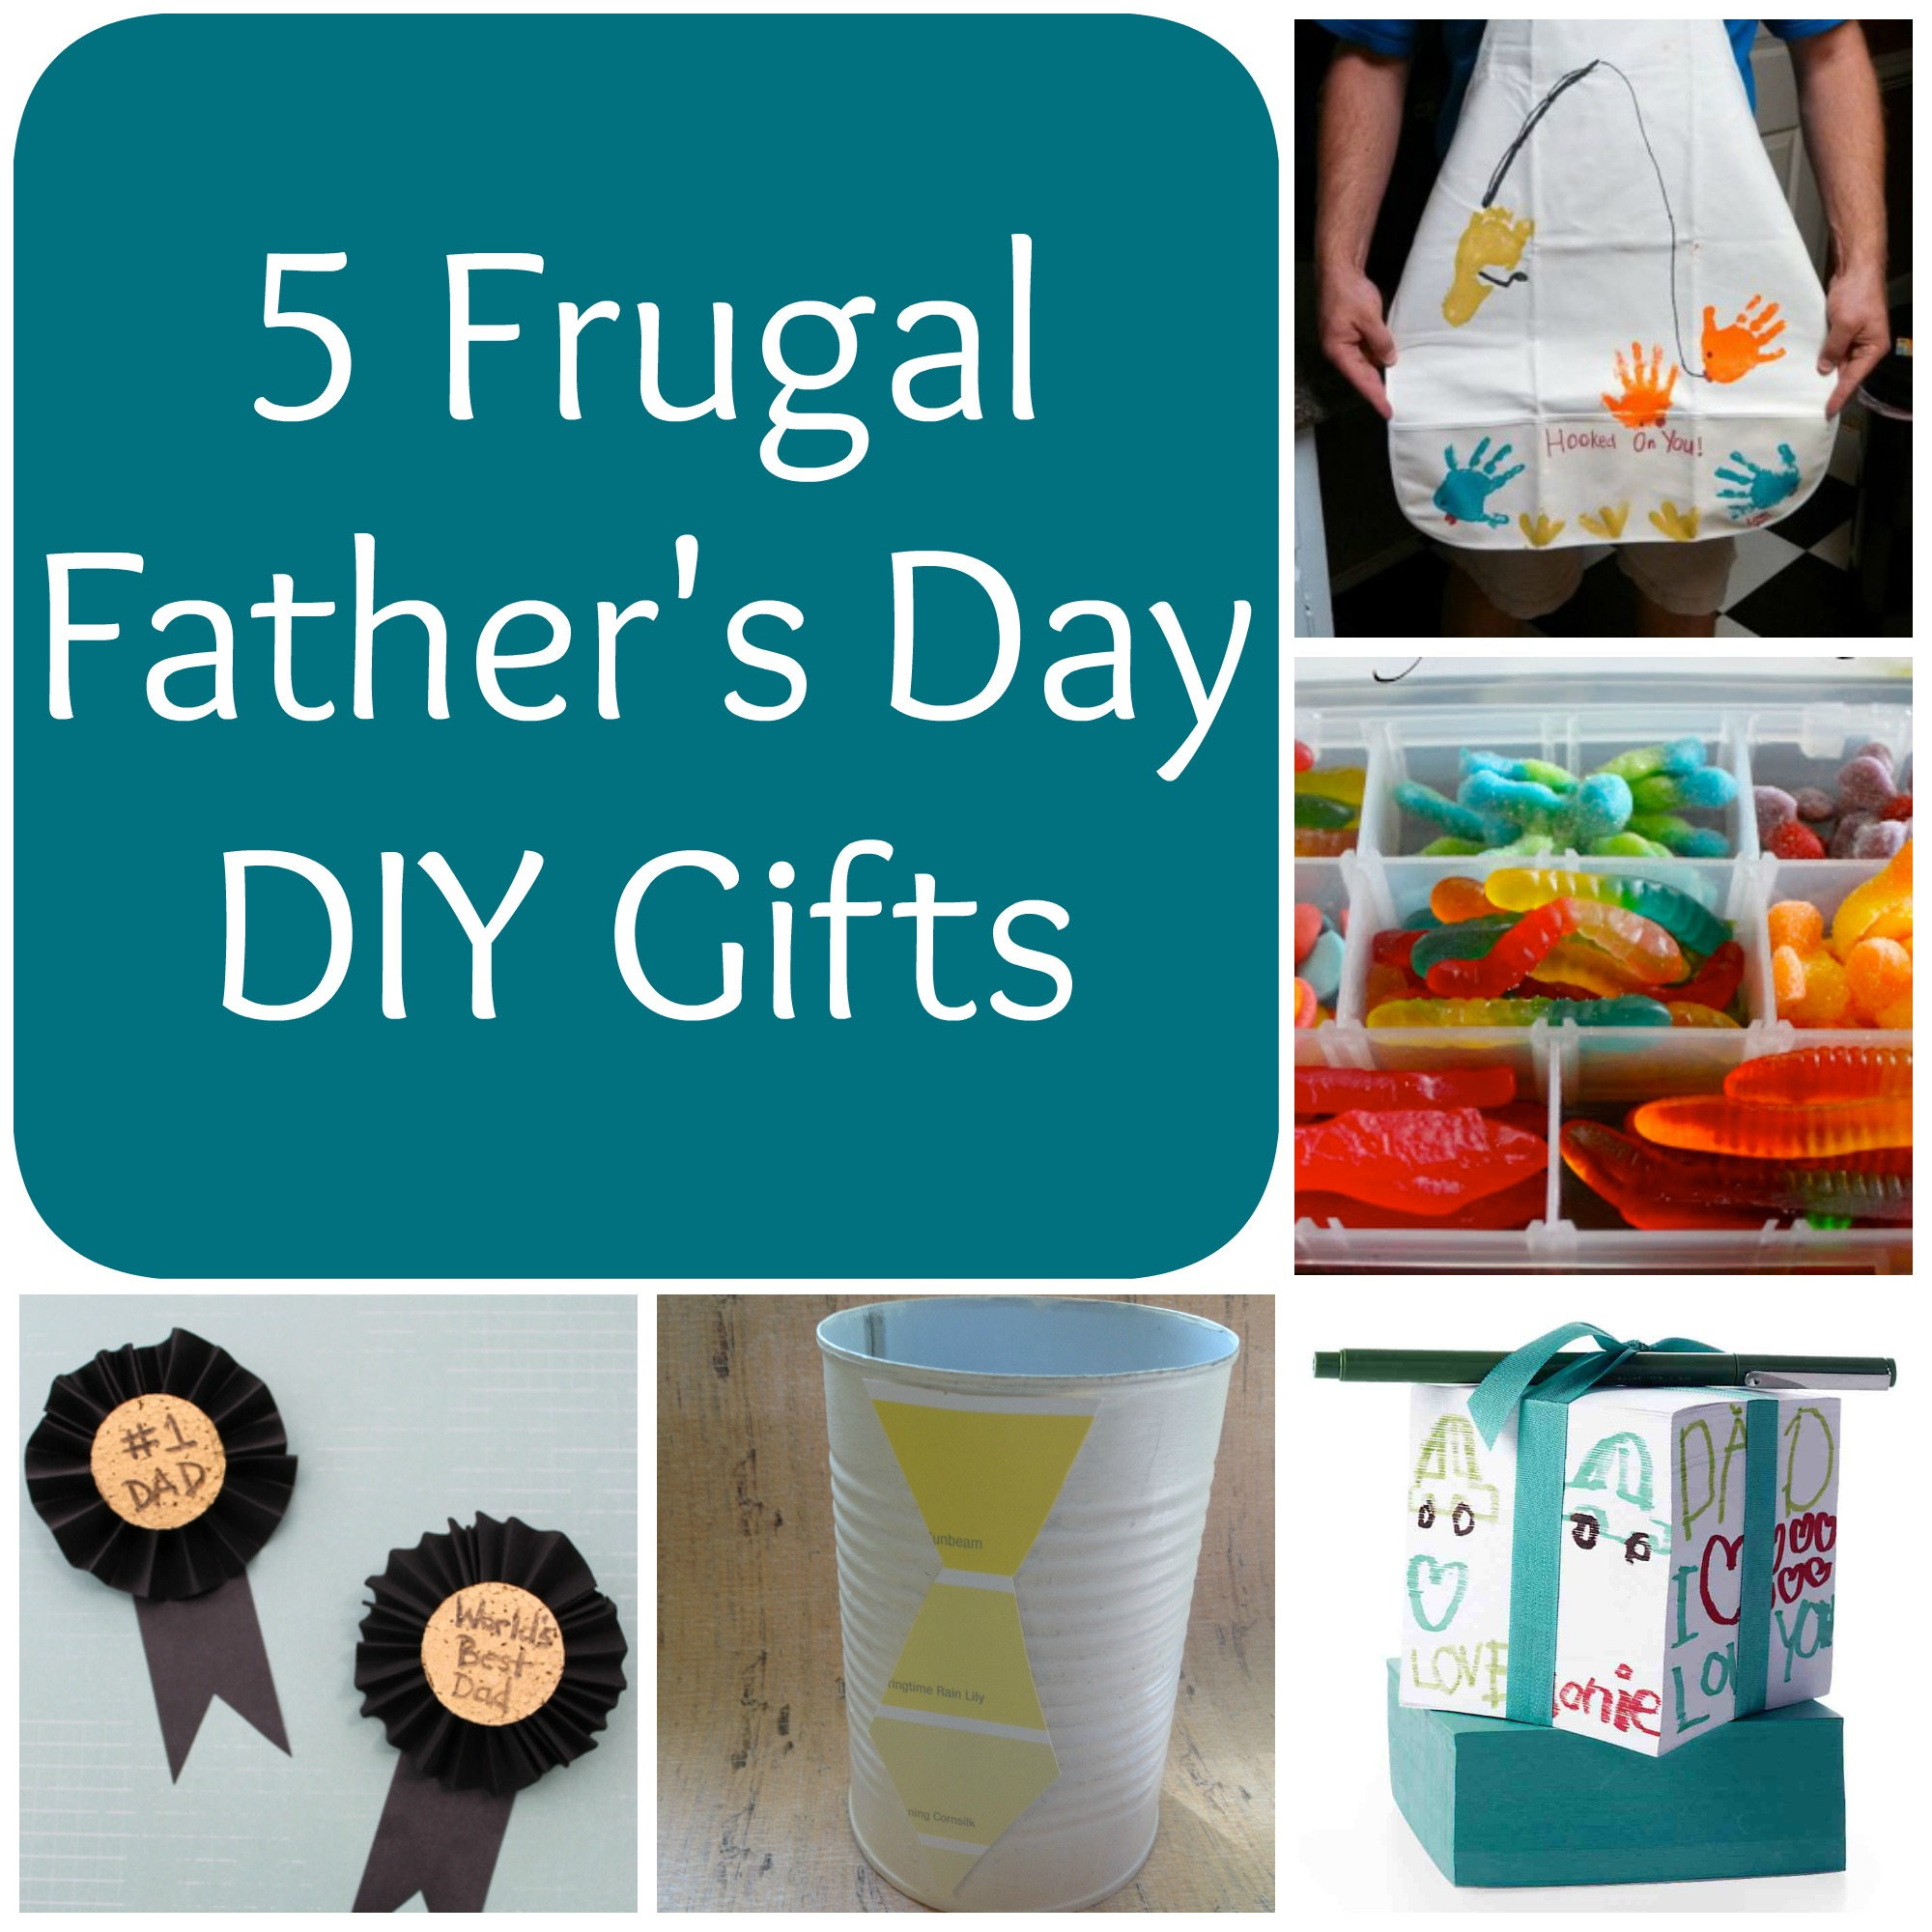 5 Frugal Father's Day DIY Gifts - mommypalooza™